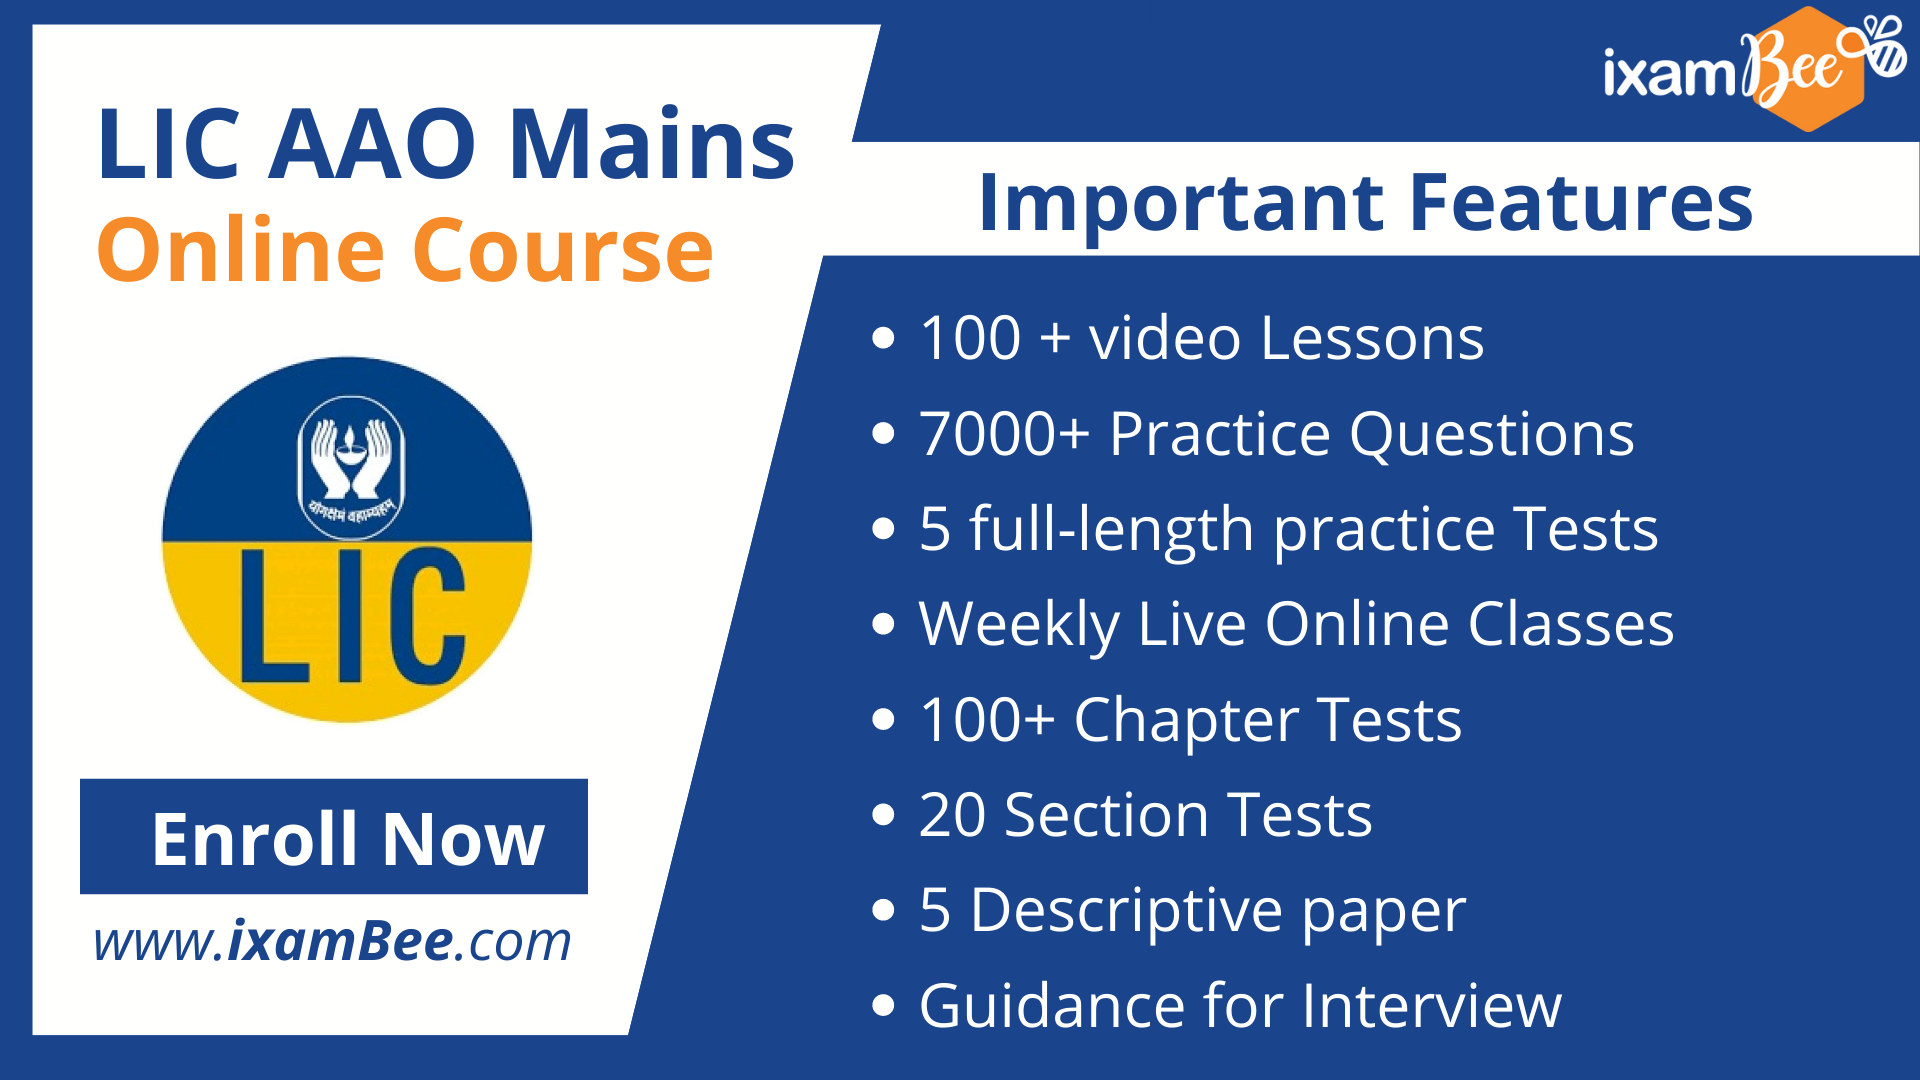 LIC AAO Mains Online Course